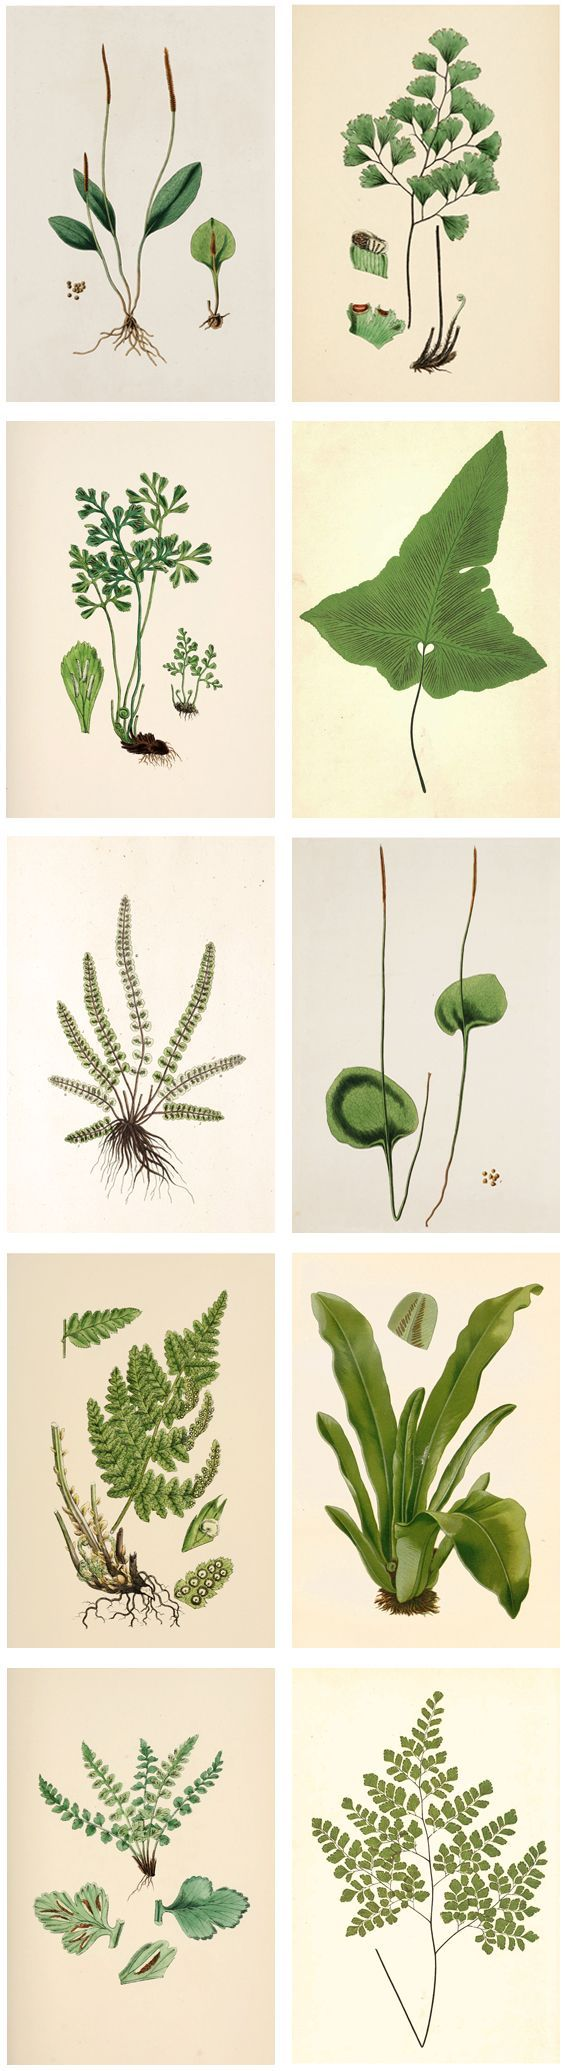 Free Printable Wall Art Plant Illustrations | The Painted Hive